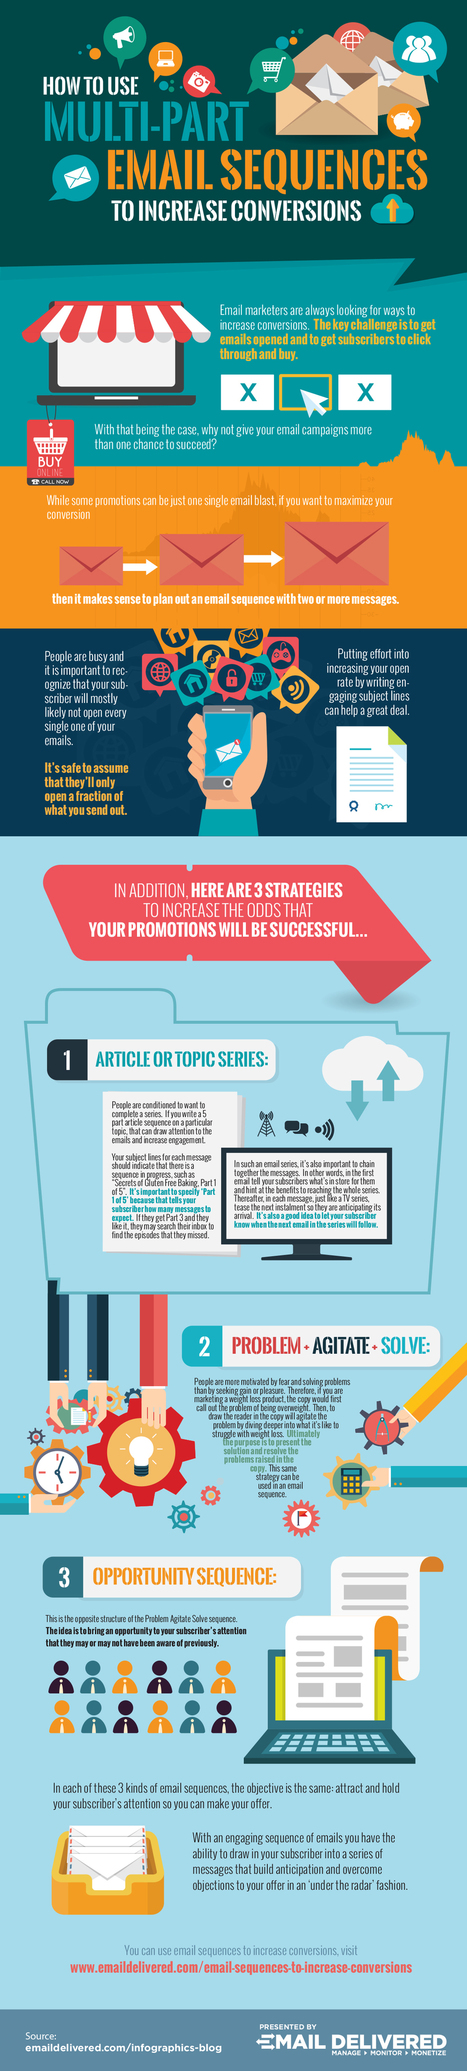 How to Use Multi-Part Email Sequences to Increase Conversions-Infographic - | Email Delivered | Scoop.it